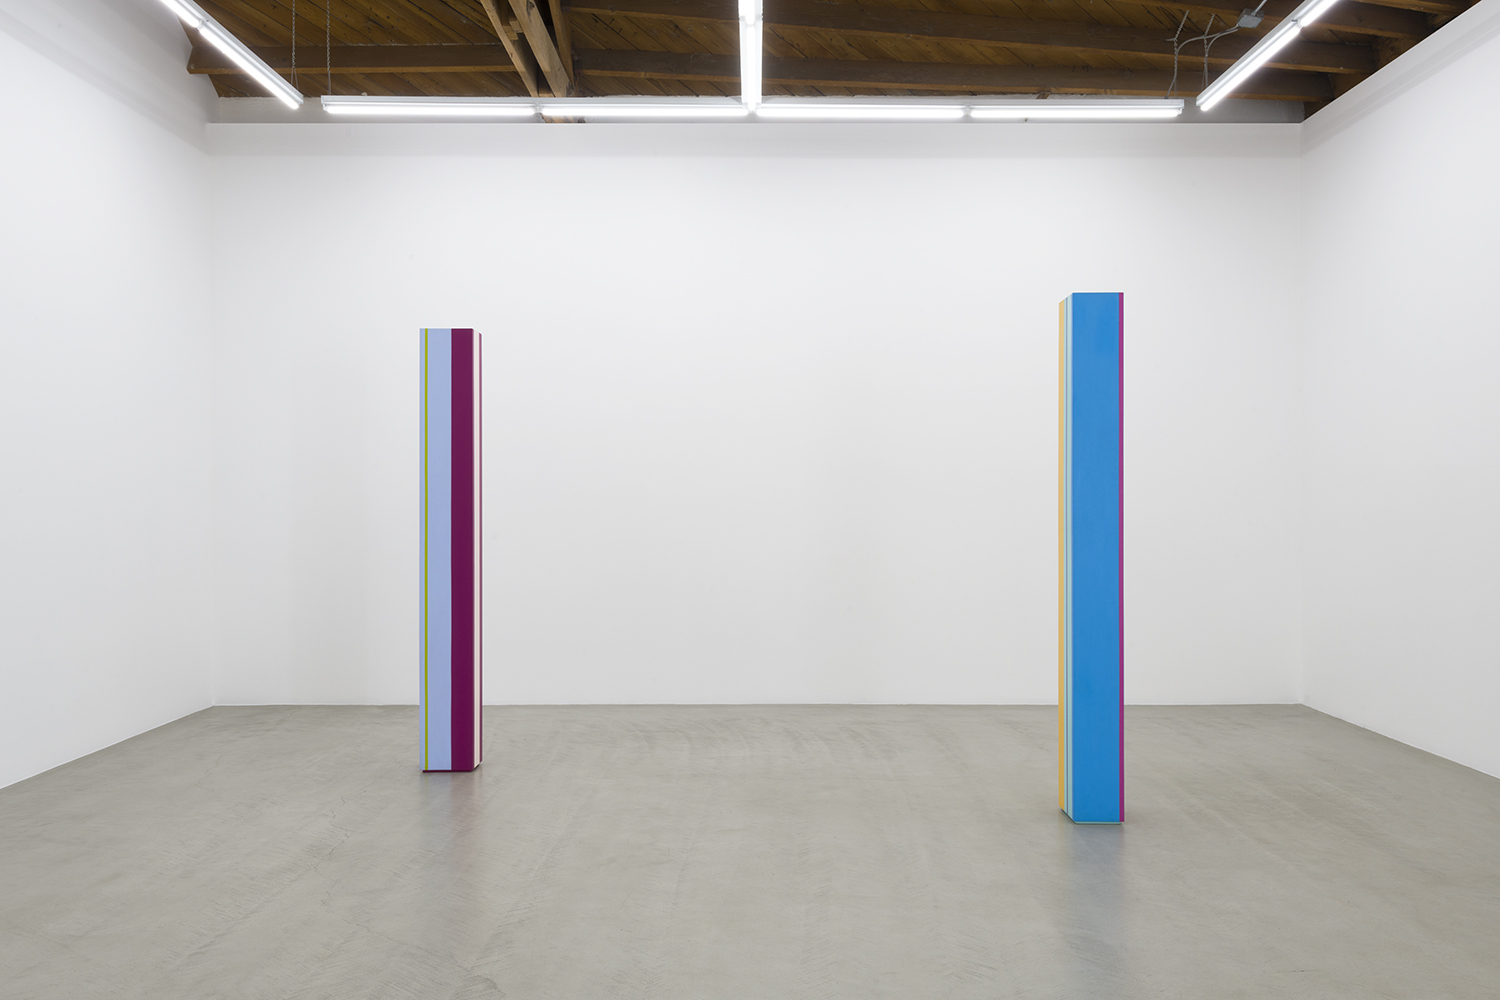 A front installation view of the two Anne Truitt sculptures in the show, showing vertical stripes of magenta, teal, blue, yellow and pink